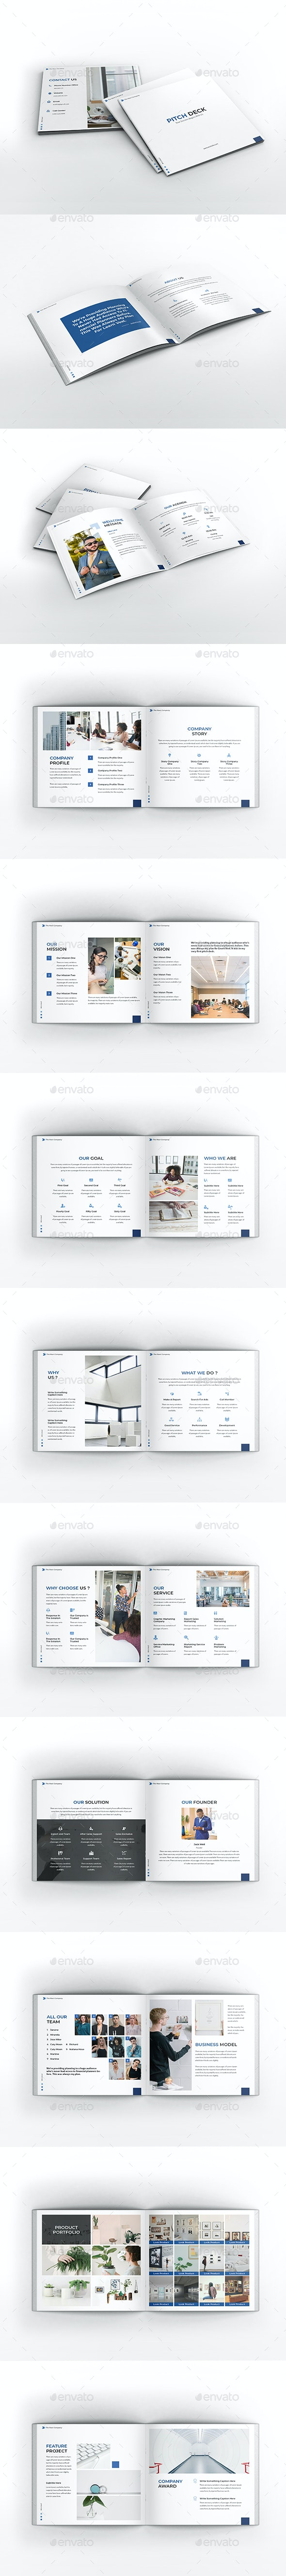 Pitch Deck Business Square Brochure - Brochures Print Templates